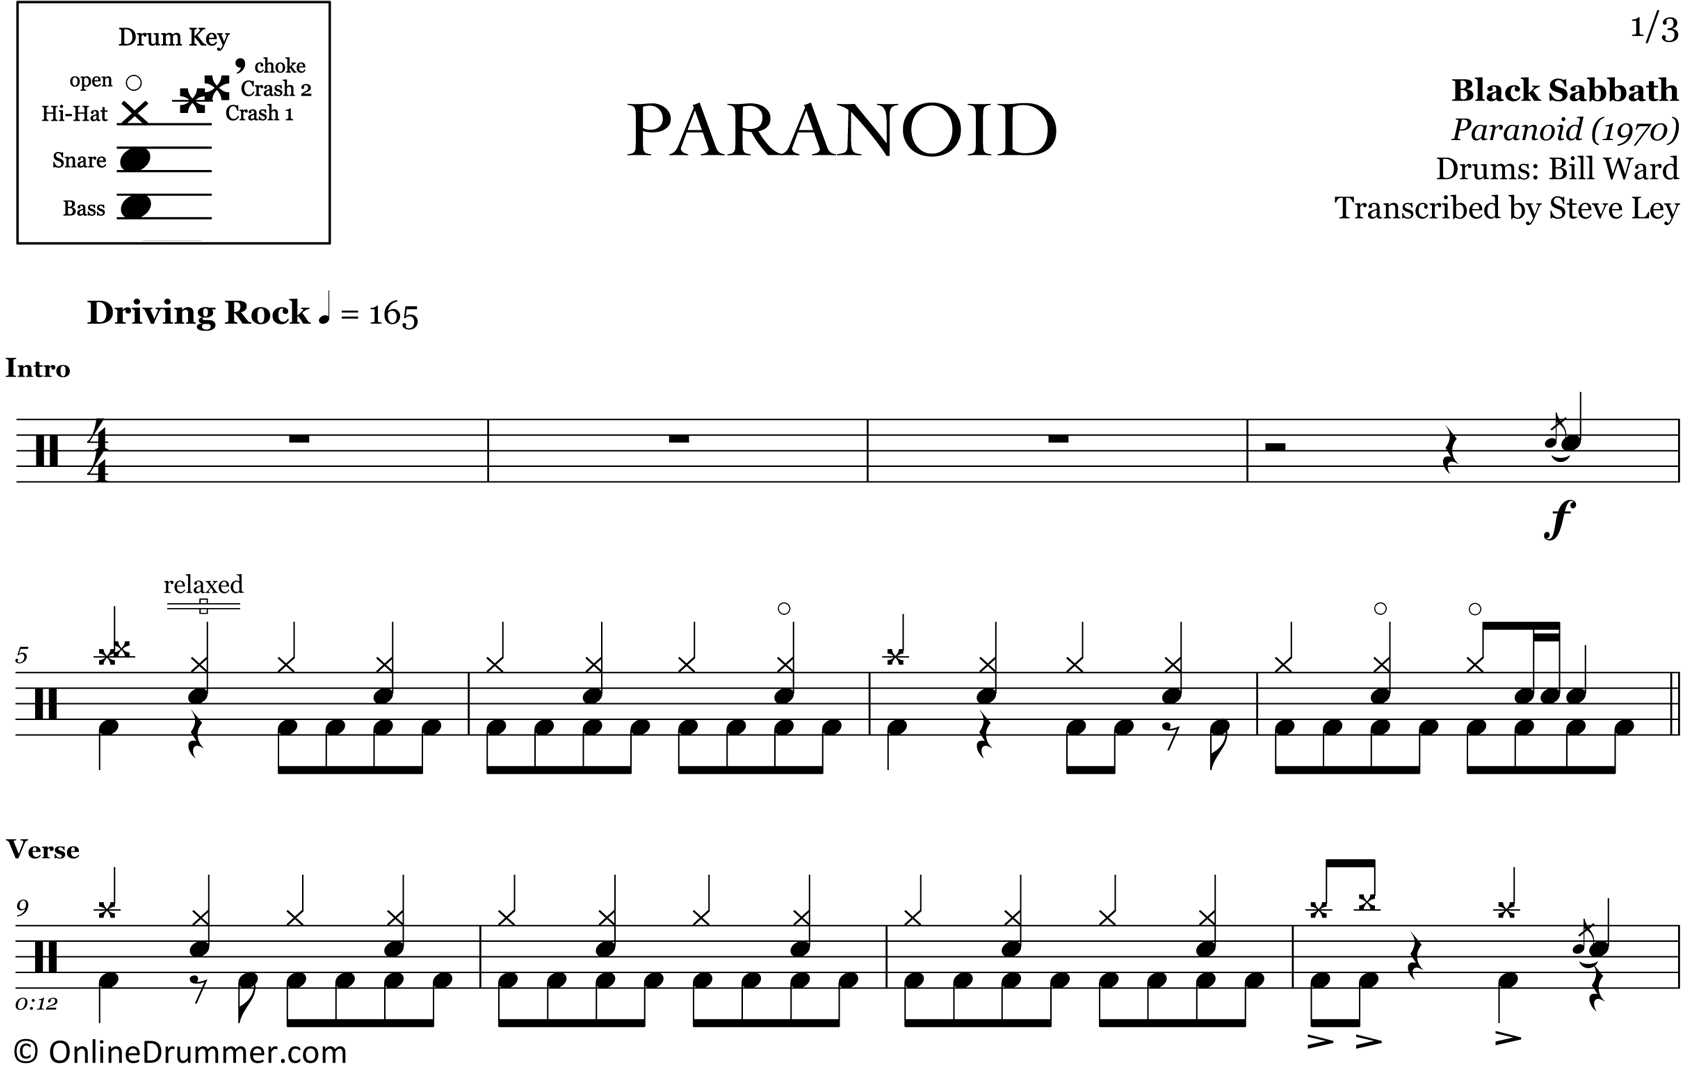 Paranoid - Black Sabbath - Drum Sheet Music